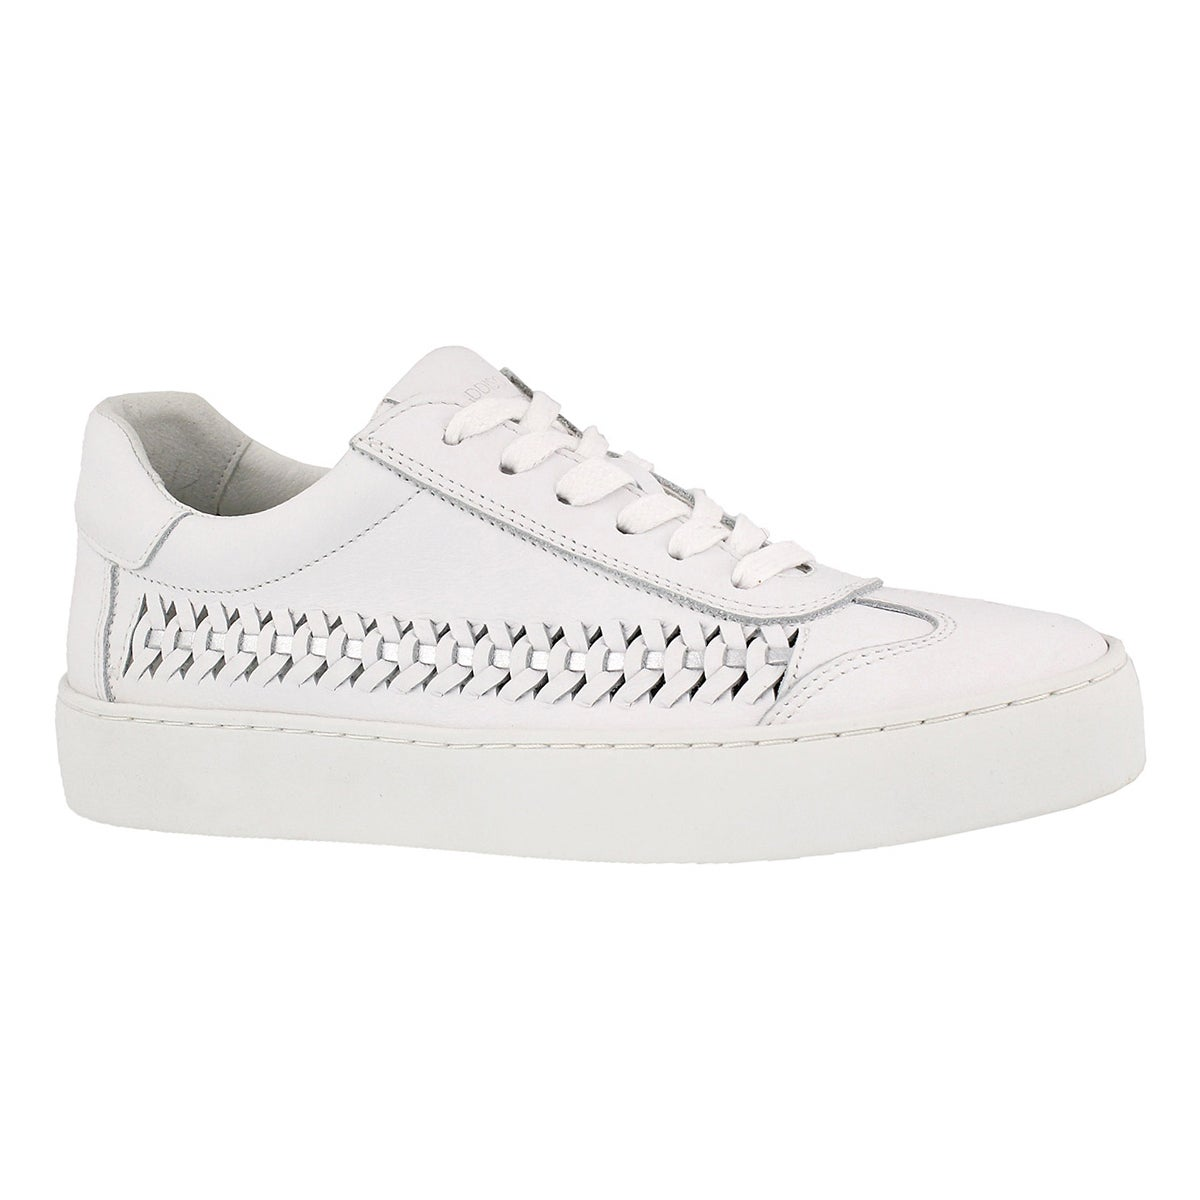 Women's BIANA white casual lace up sneakers